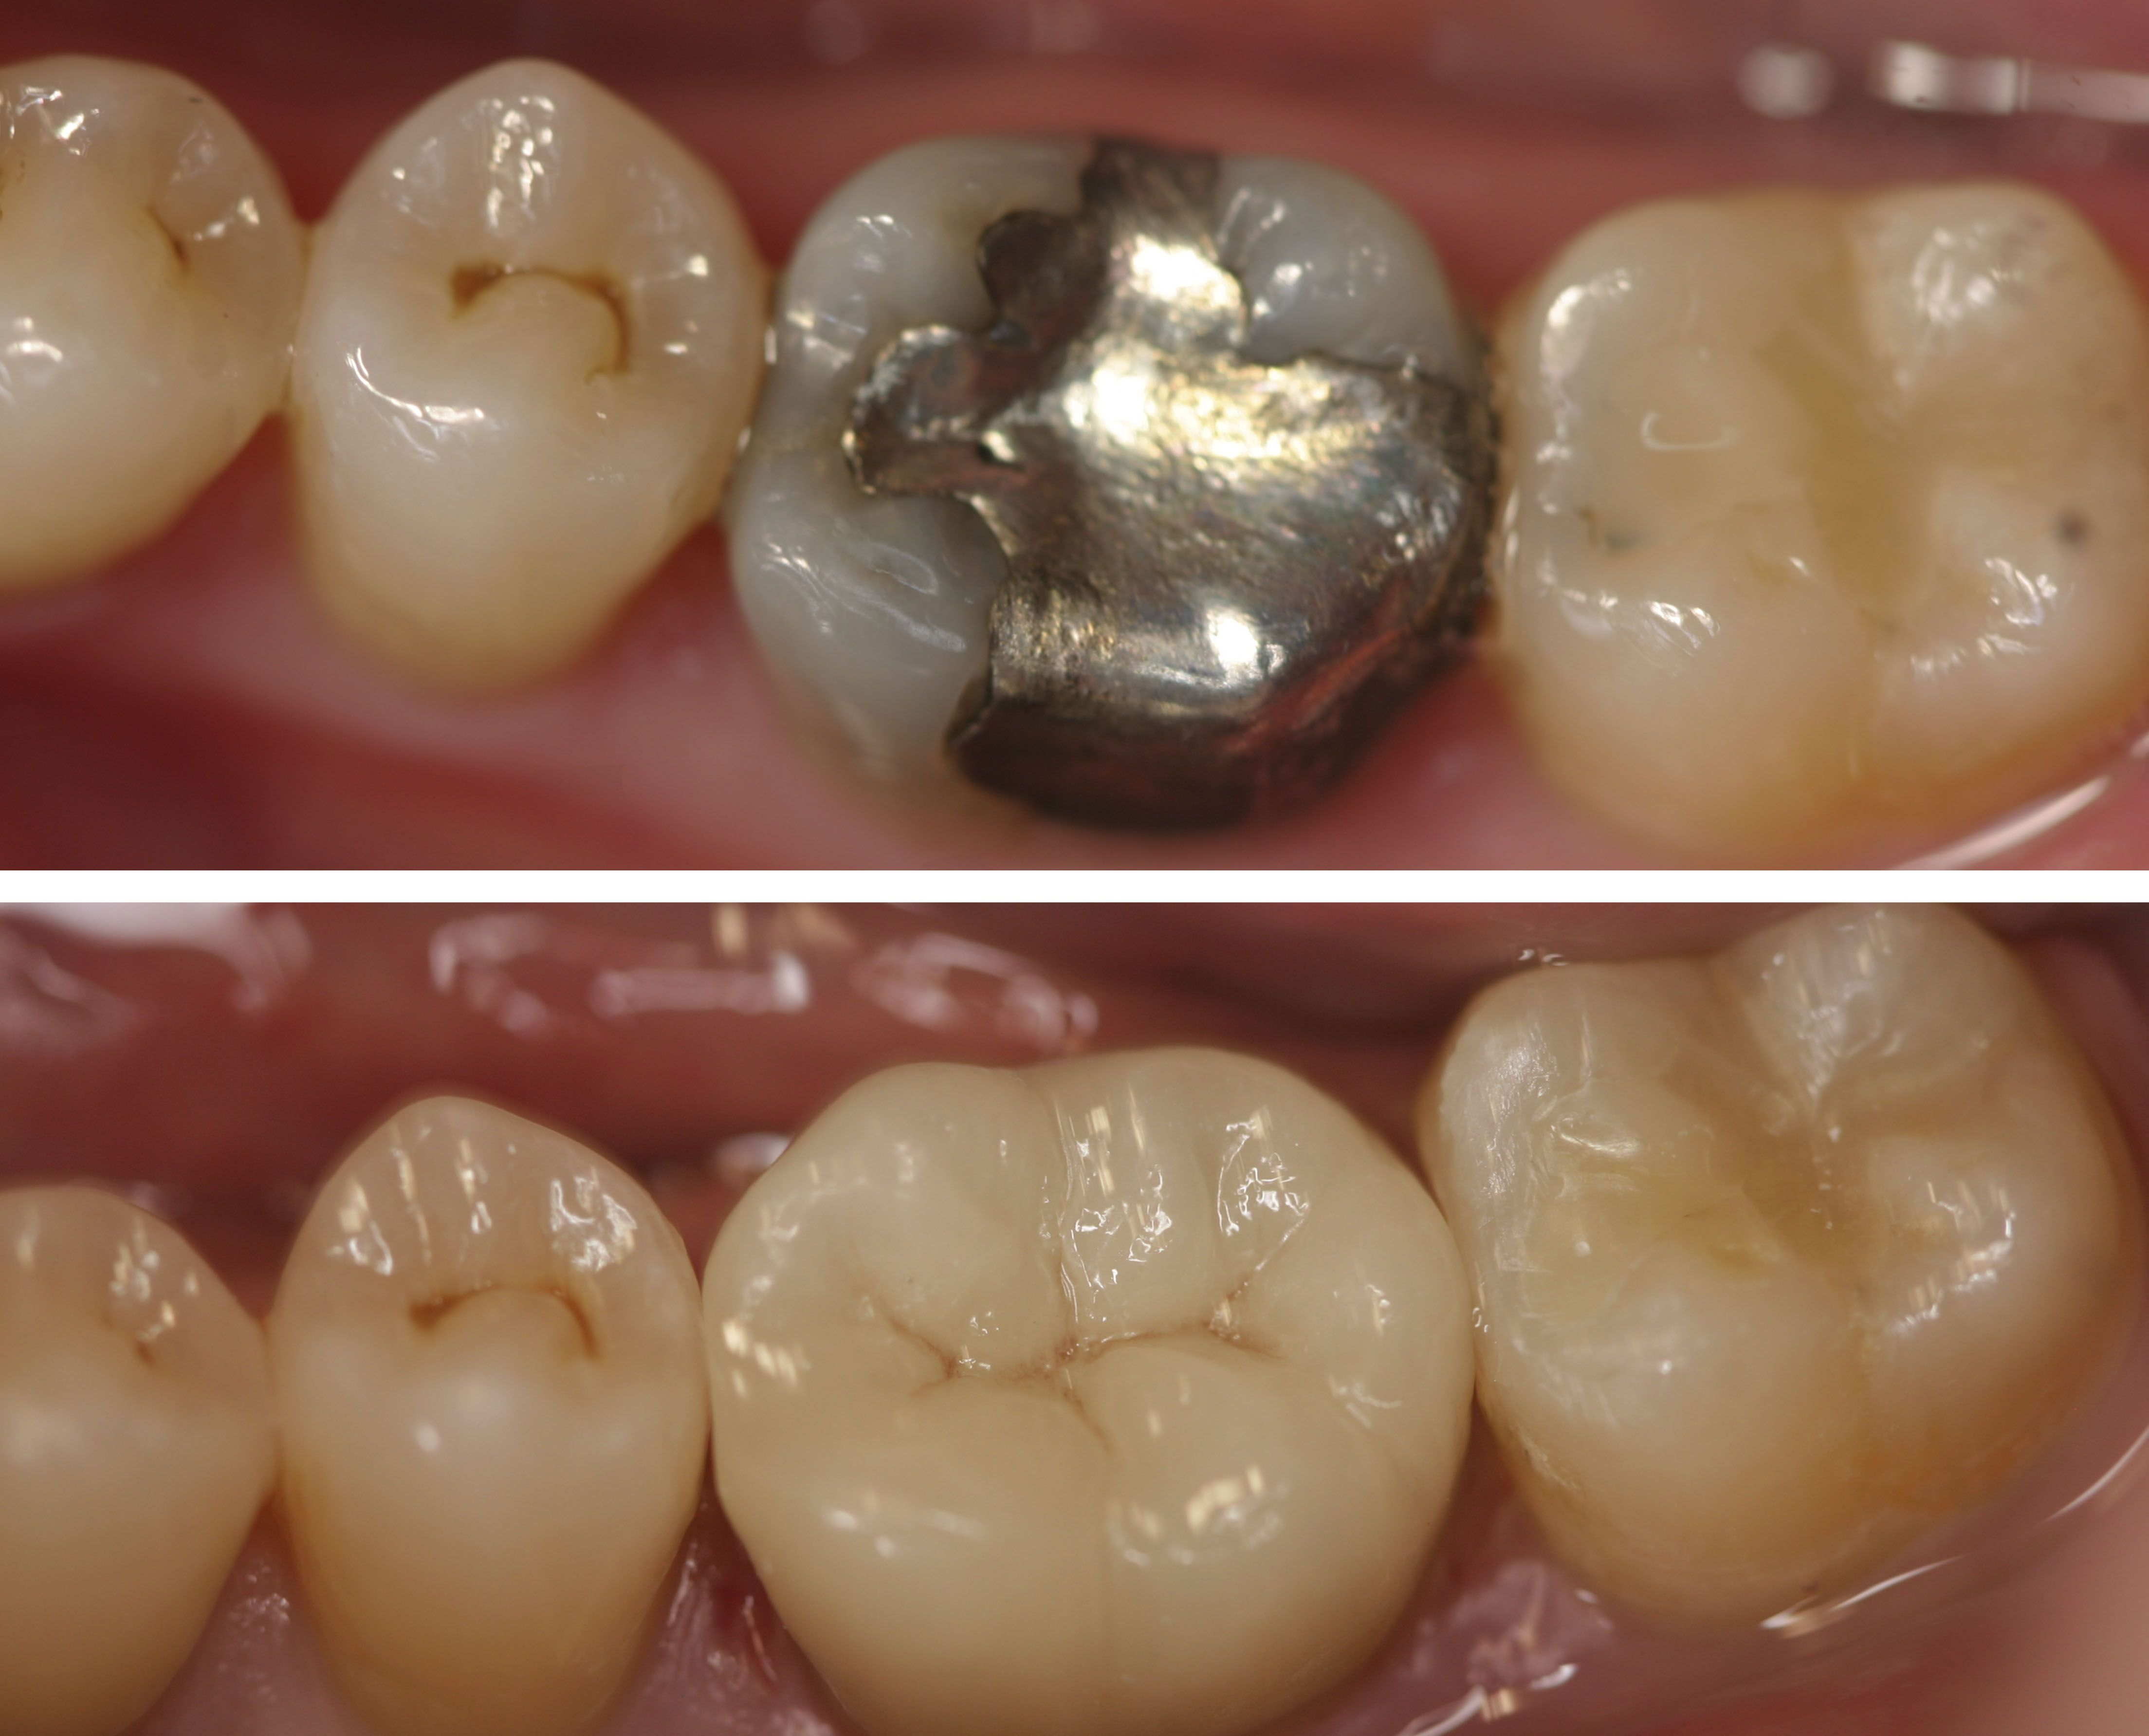 Before and After Patient had a large amalgam filling that